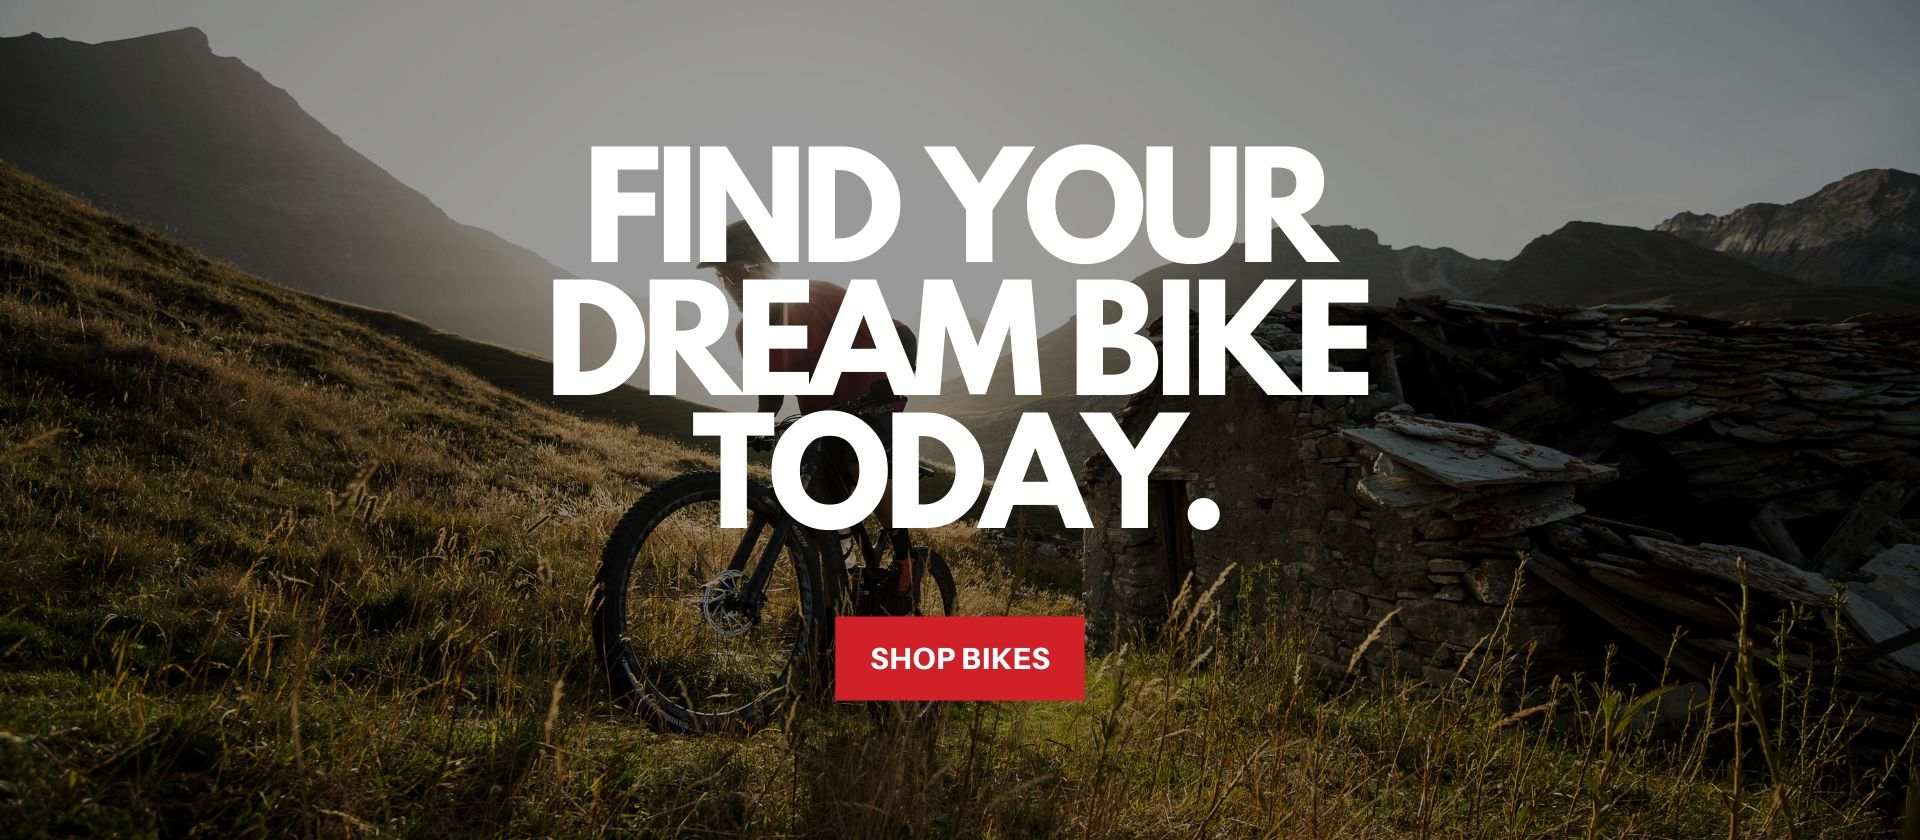 Find Your Dream Bike Today